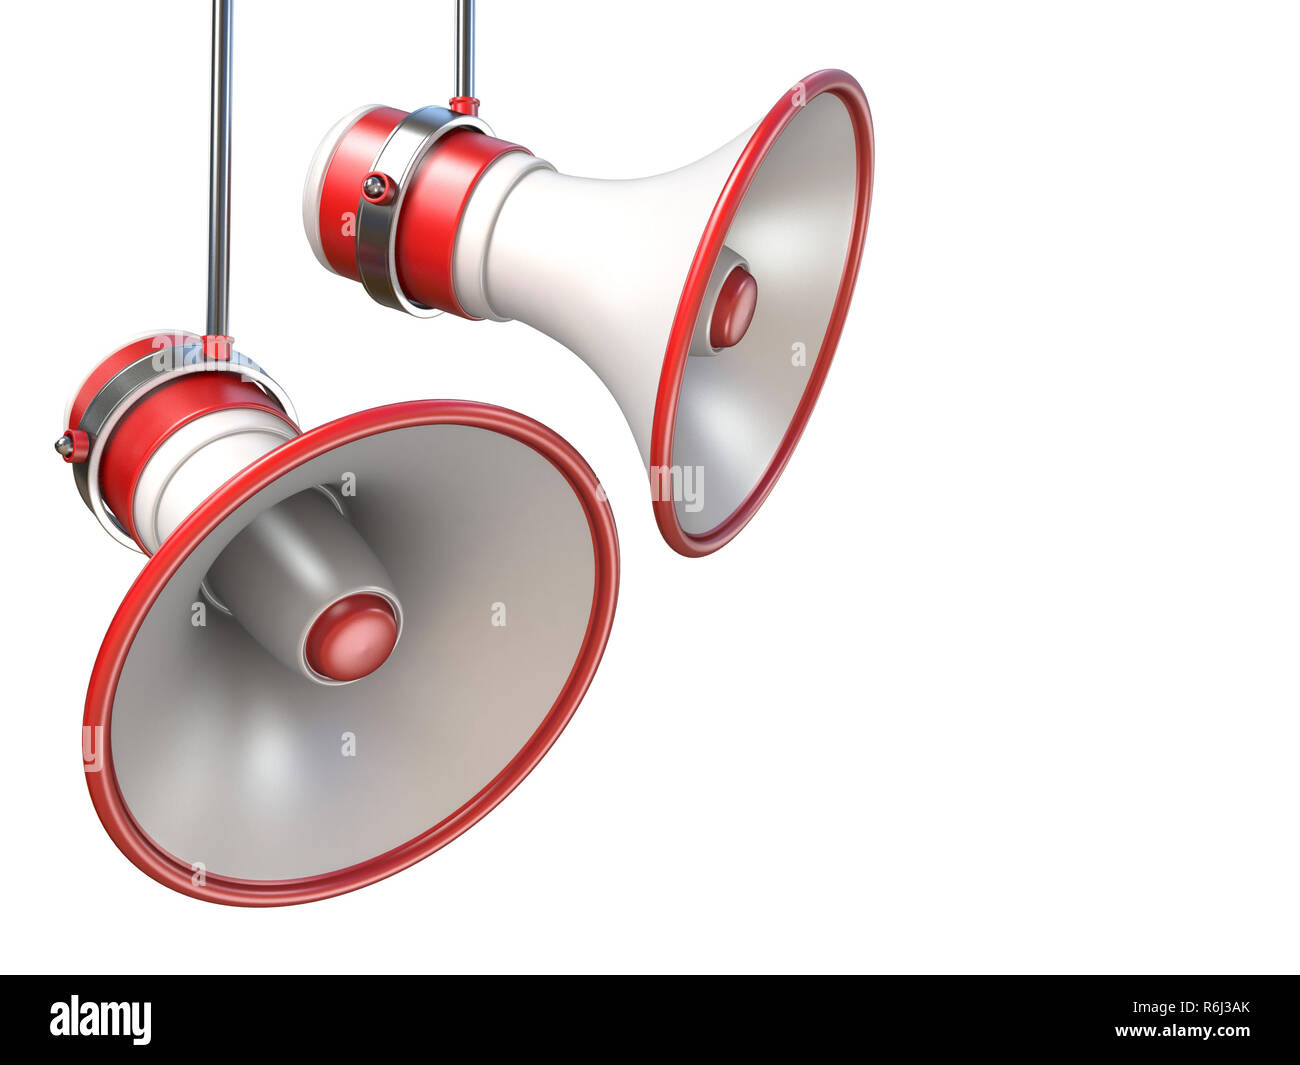 Two red and white megaphones 3D - Stock Image